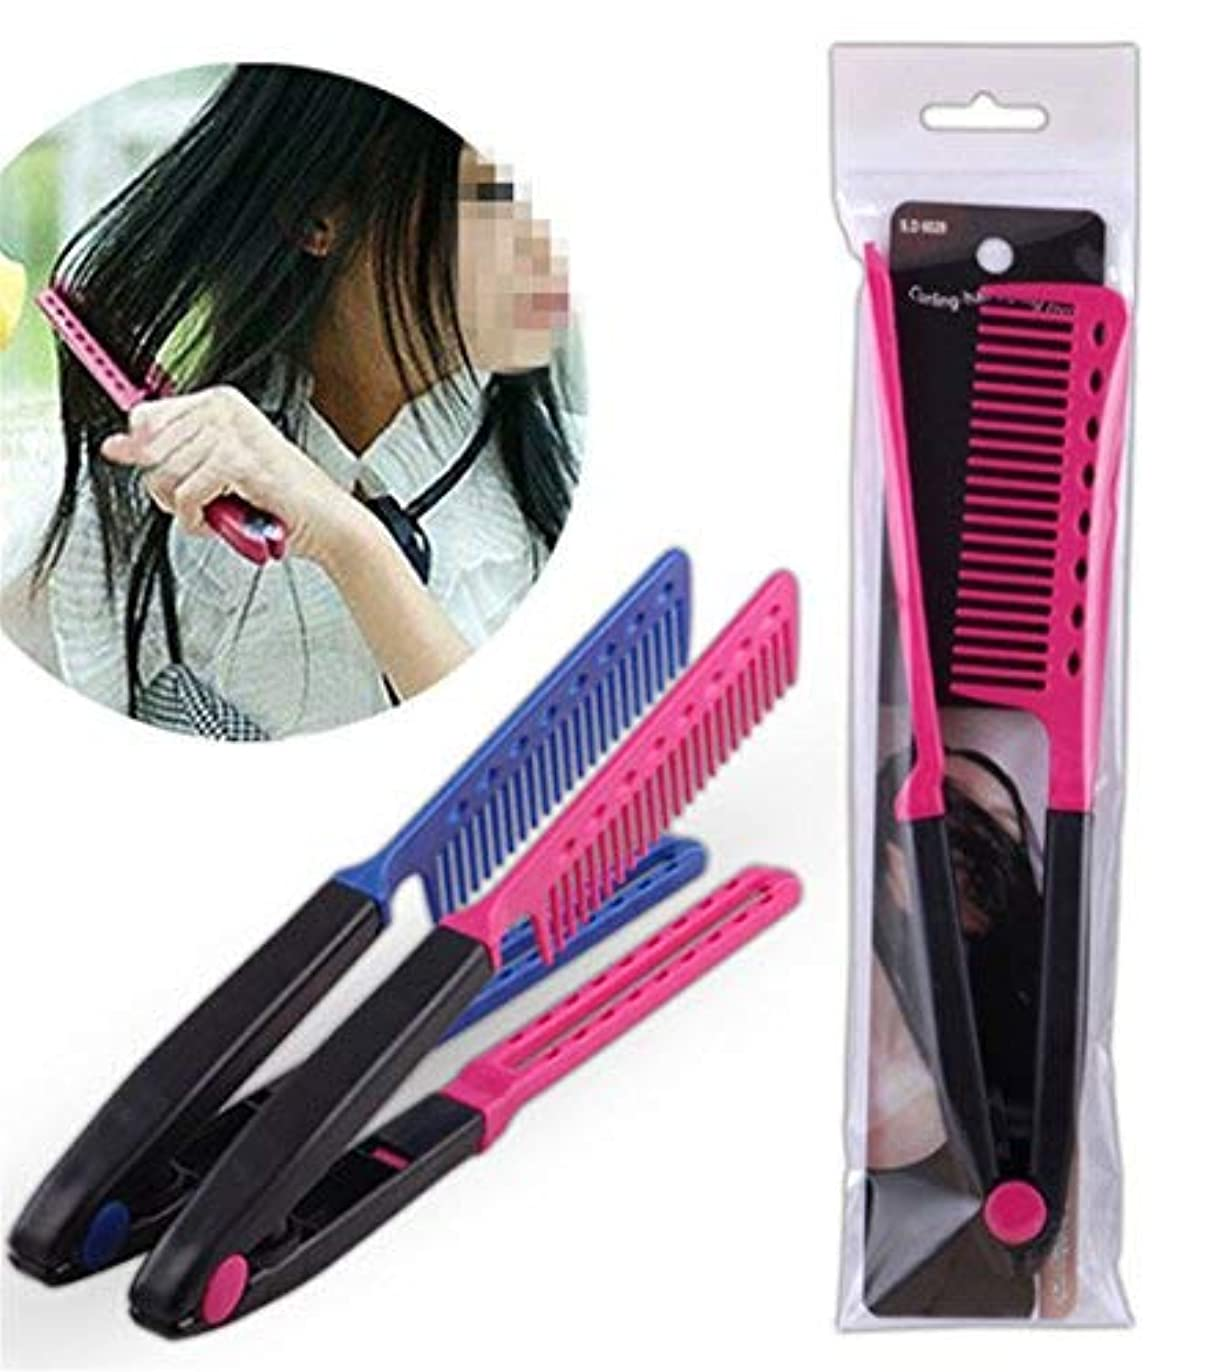 概して感性パック1Pc DIY Salon Hair Brush Combs Hairdressing Styling Hair Straightener V Shaped Straight Comb Color Random [並行輸入品]